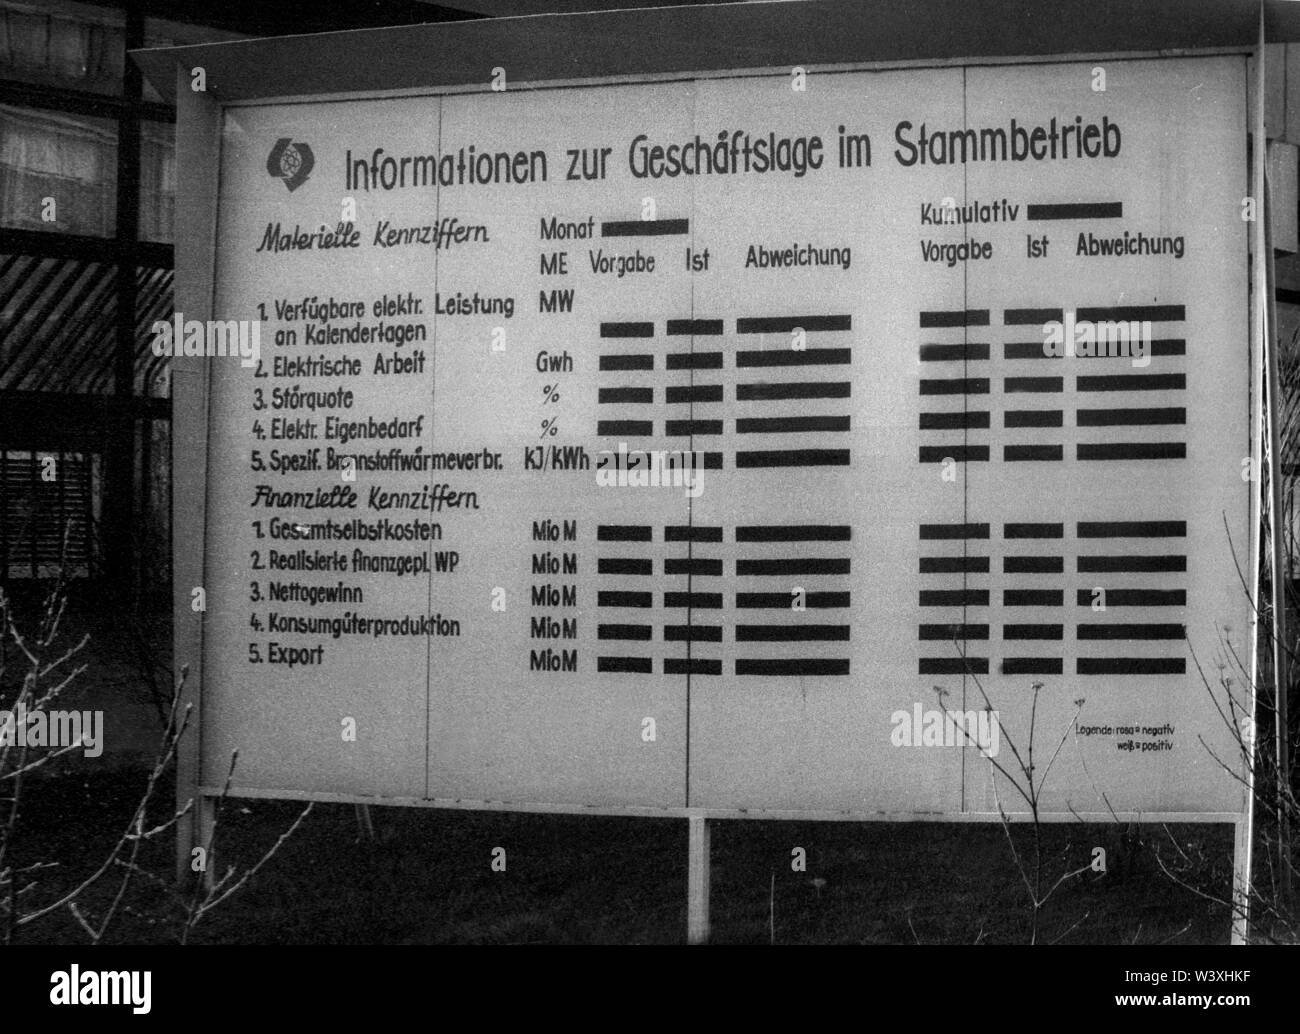 FILED - 01 January 1990, Berlin, Lubmin: Mecklenburg-Western Pomerania/GDR/1990 Lubmin nuclear power plant near Greifswald. GDR public in front of the factory gate. Here the successes were announced, e.g. how much consumer goods the company has produced. In 1990, the ad remained blank. The technology of the NPP was Soviet. A total of 5 blocks were planned, 4 were in operation, each with a capacity of 400 MW. All decommissioned in 1990 // Atom/Energy/Reactor/Atom/Nuclear power/Federal states Photo: Paul Glaser/dpa-Zentralbild/ZB - Stock Image